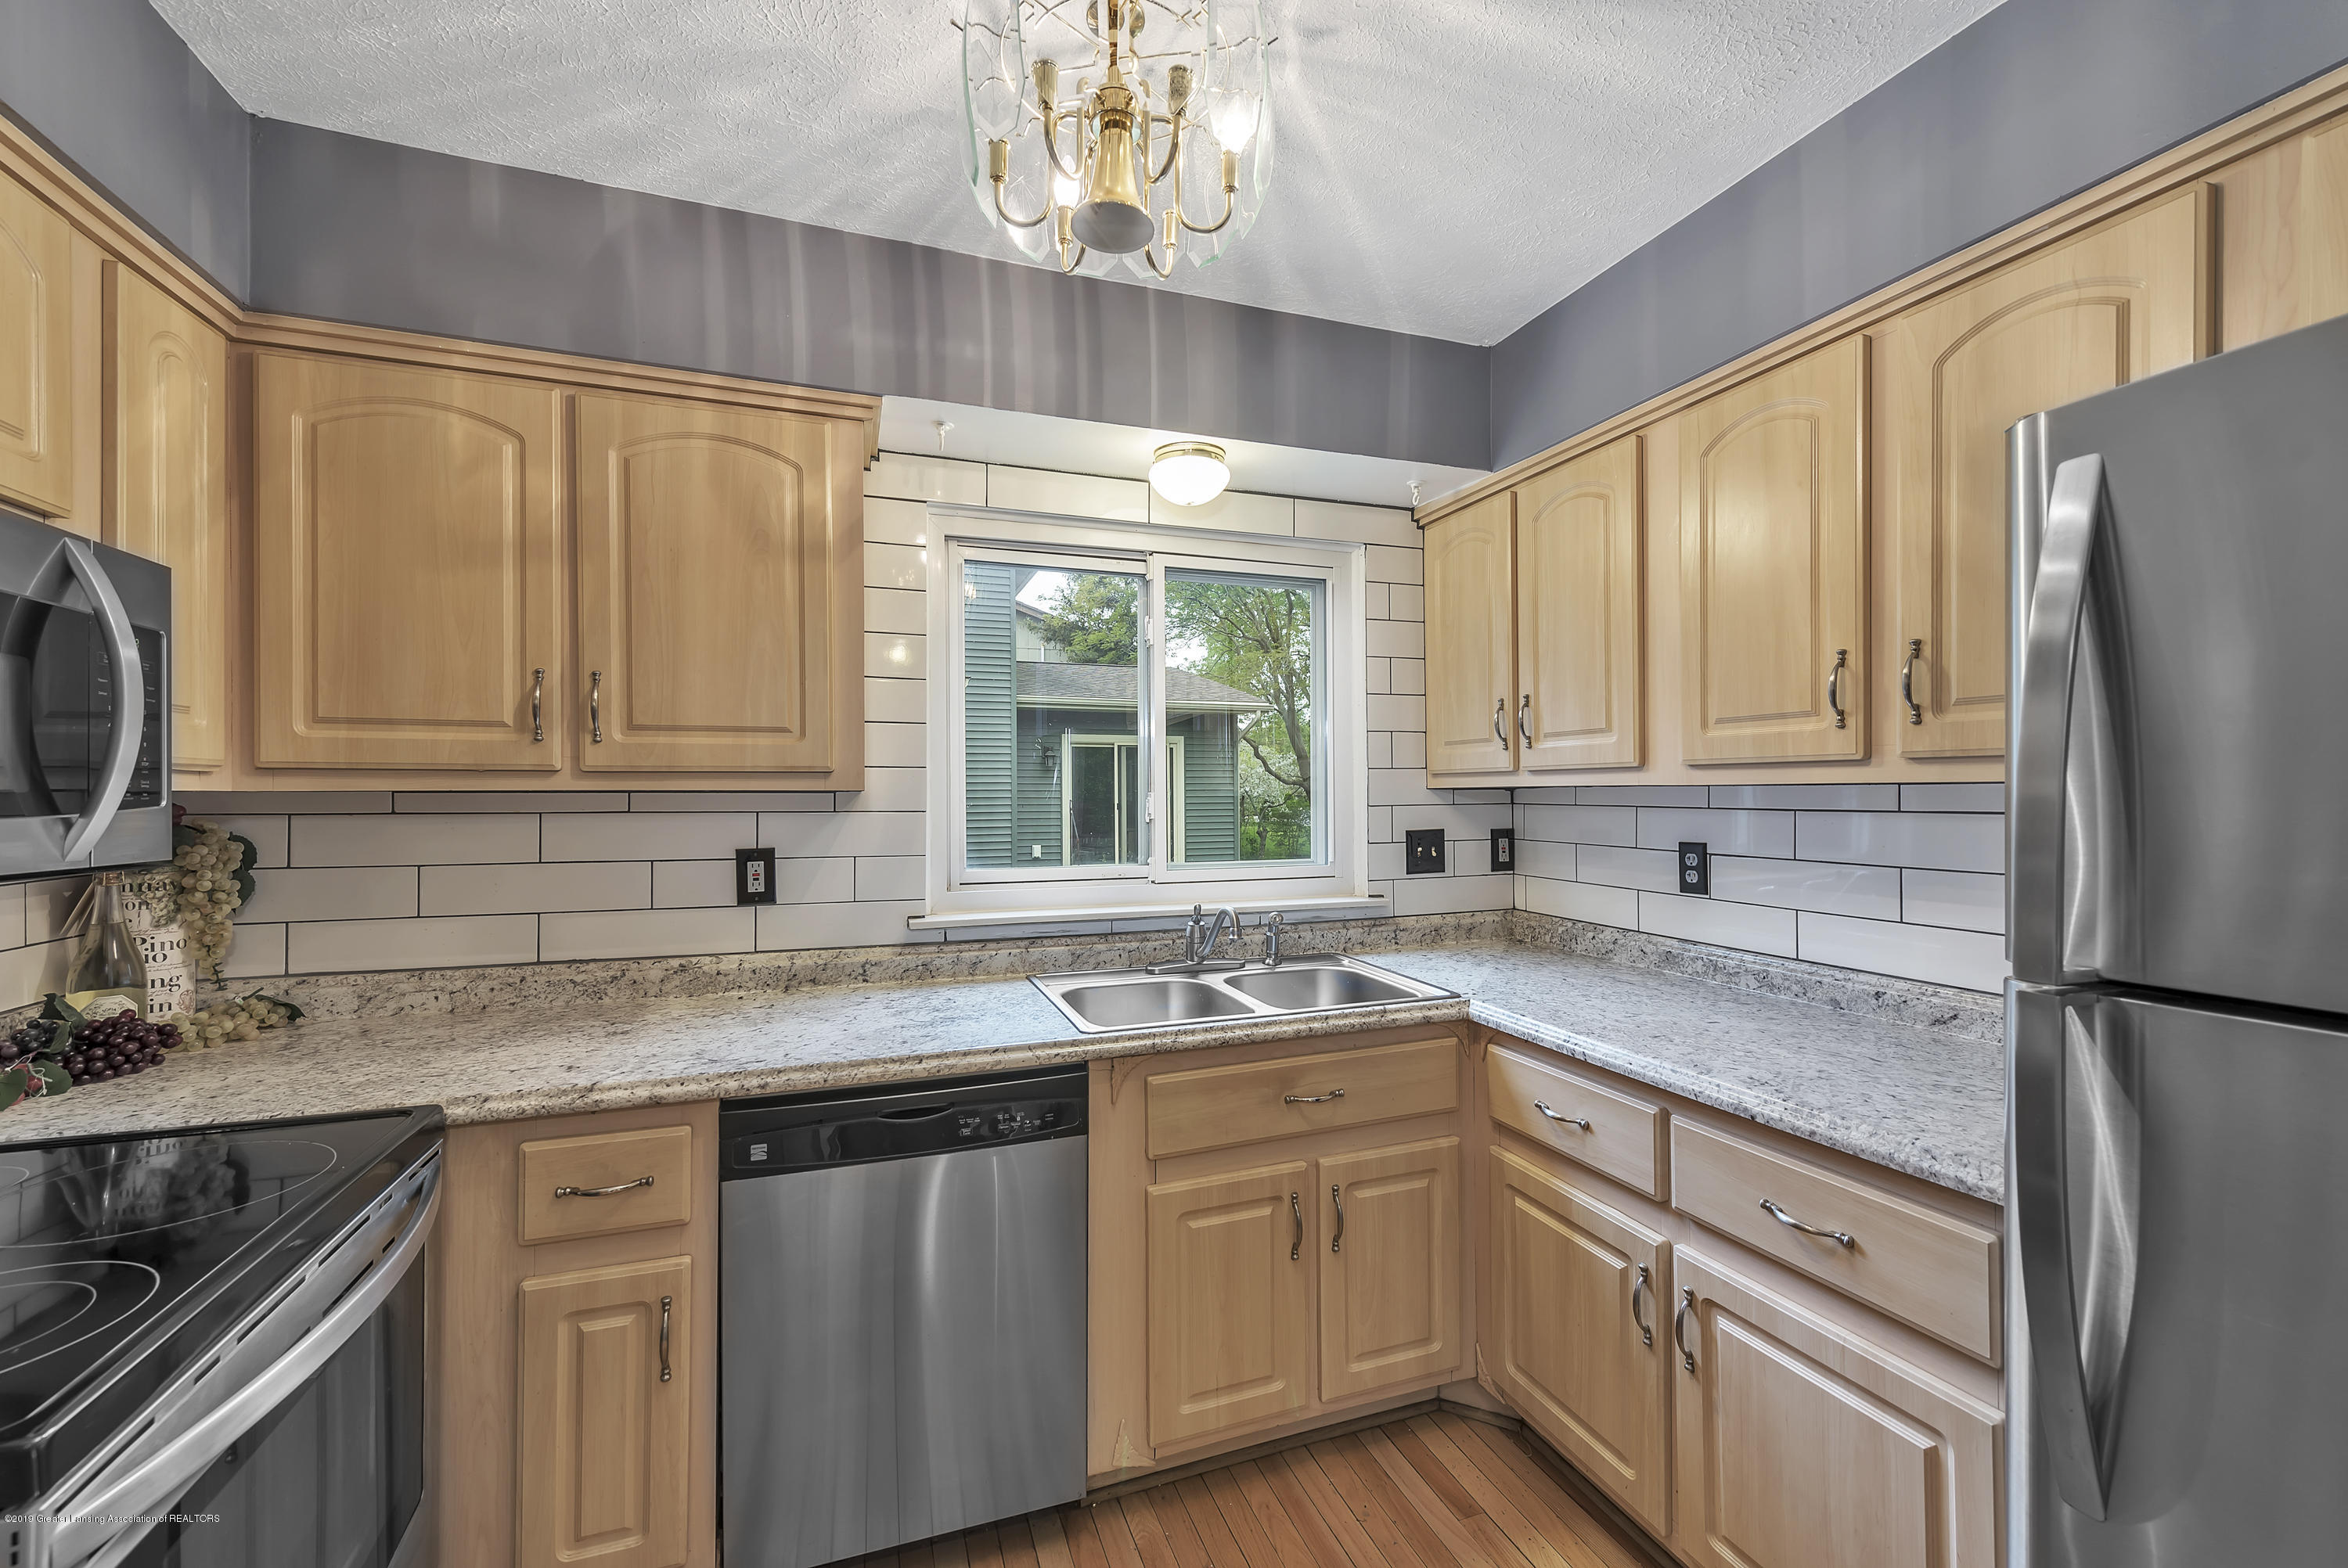 1336 Chartwell Dual Carriage Way - 1336-Chartwell-Duel-Carriage-Way-South-E - 13